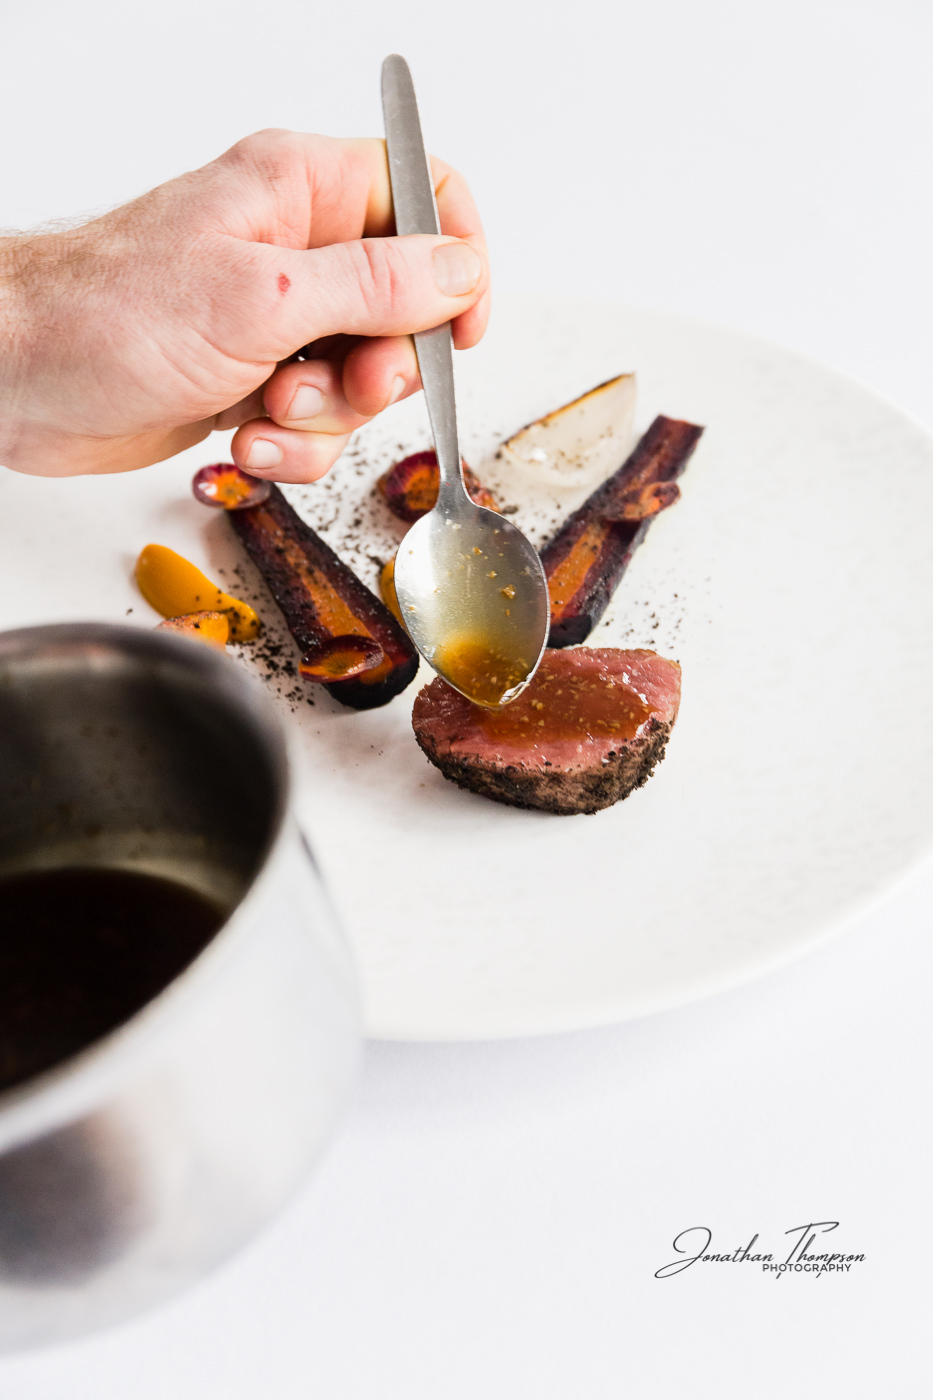 Chefs hand spooning gravy onto a meat and carrot dish served on a white plate